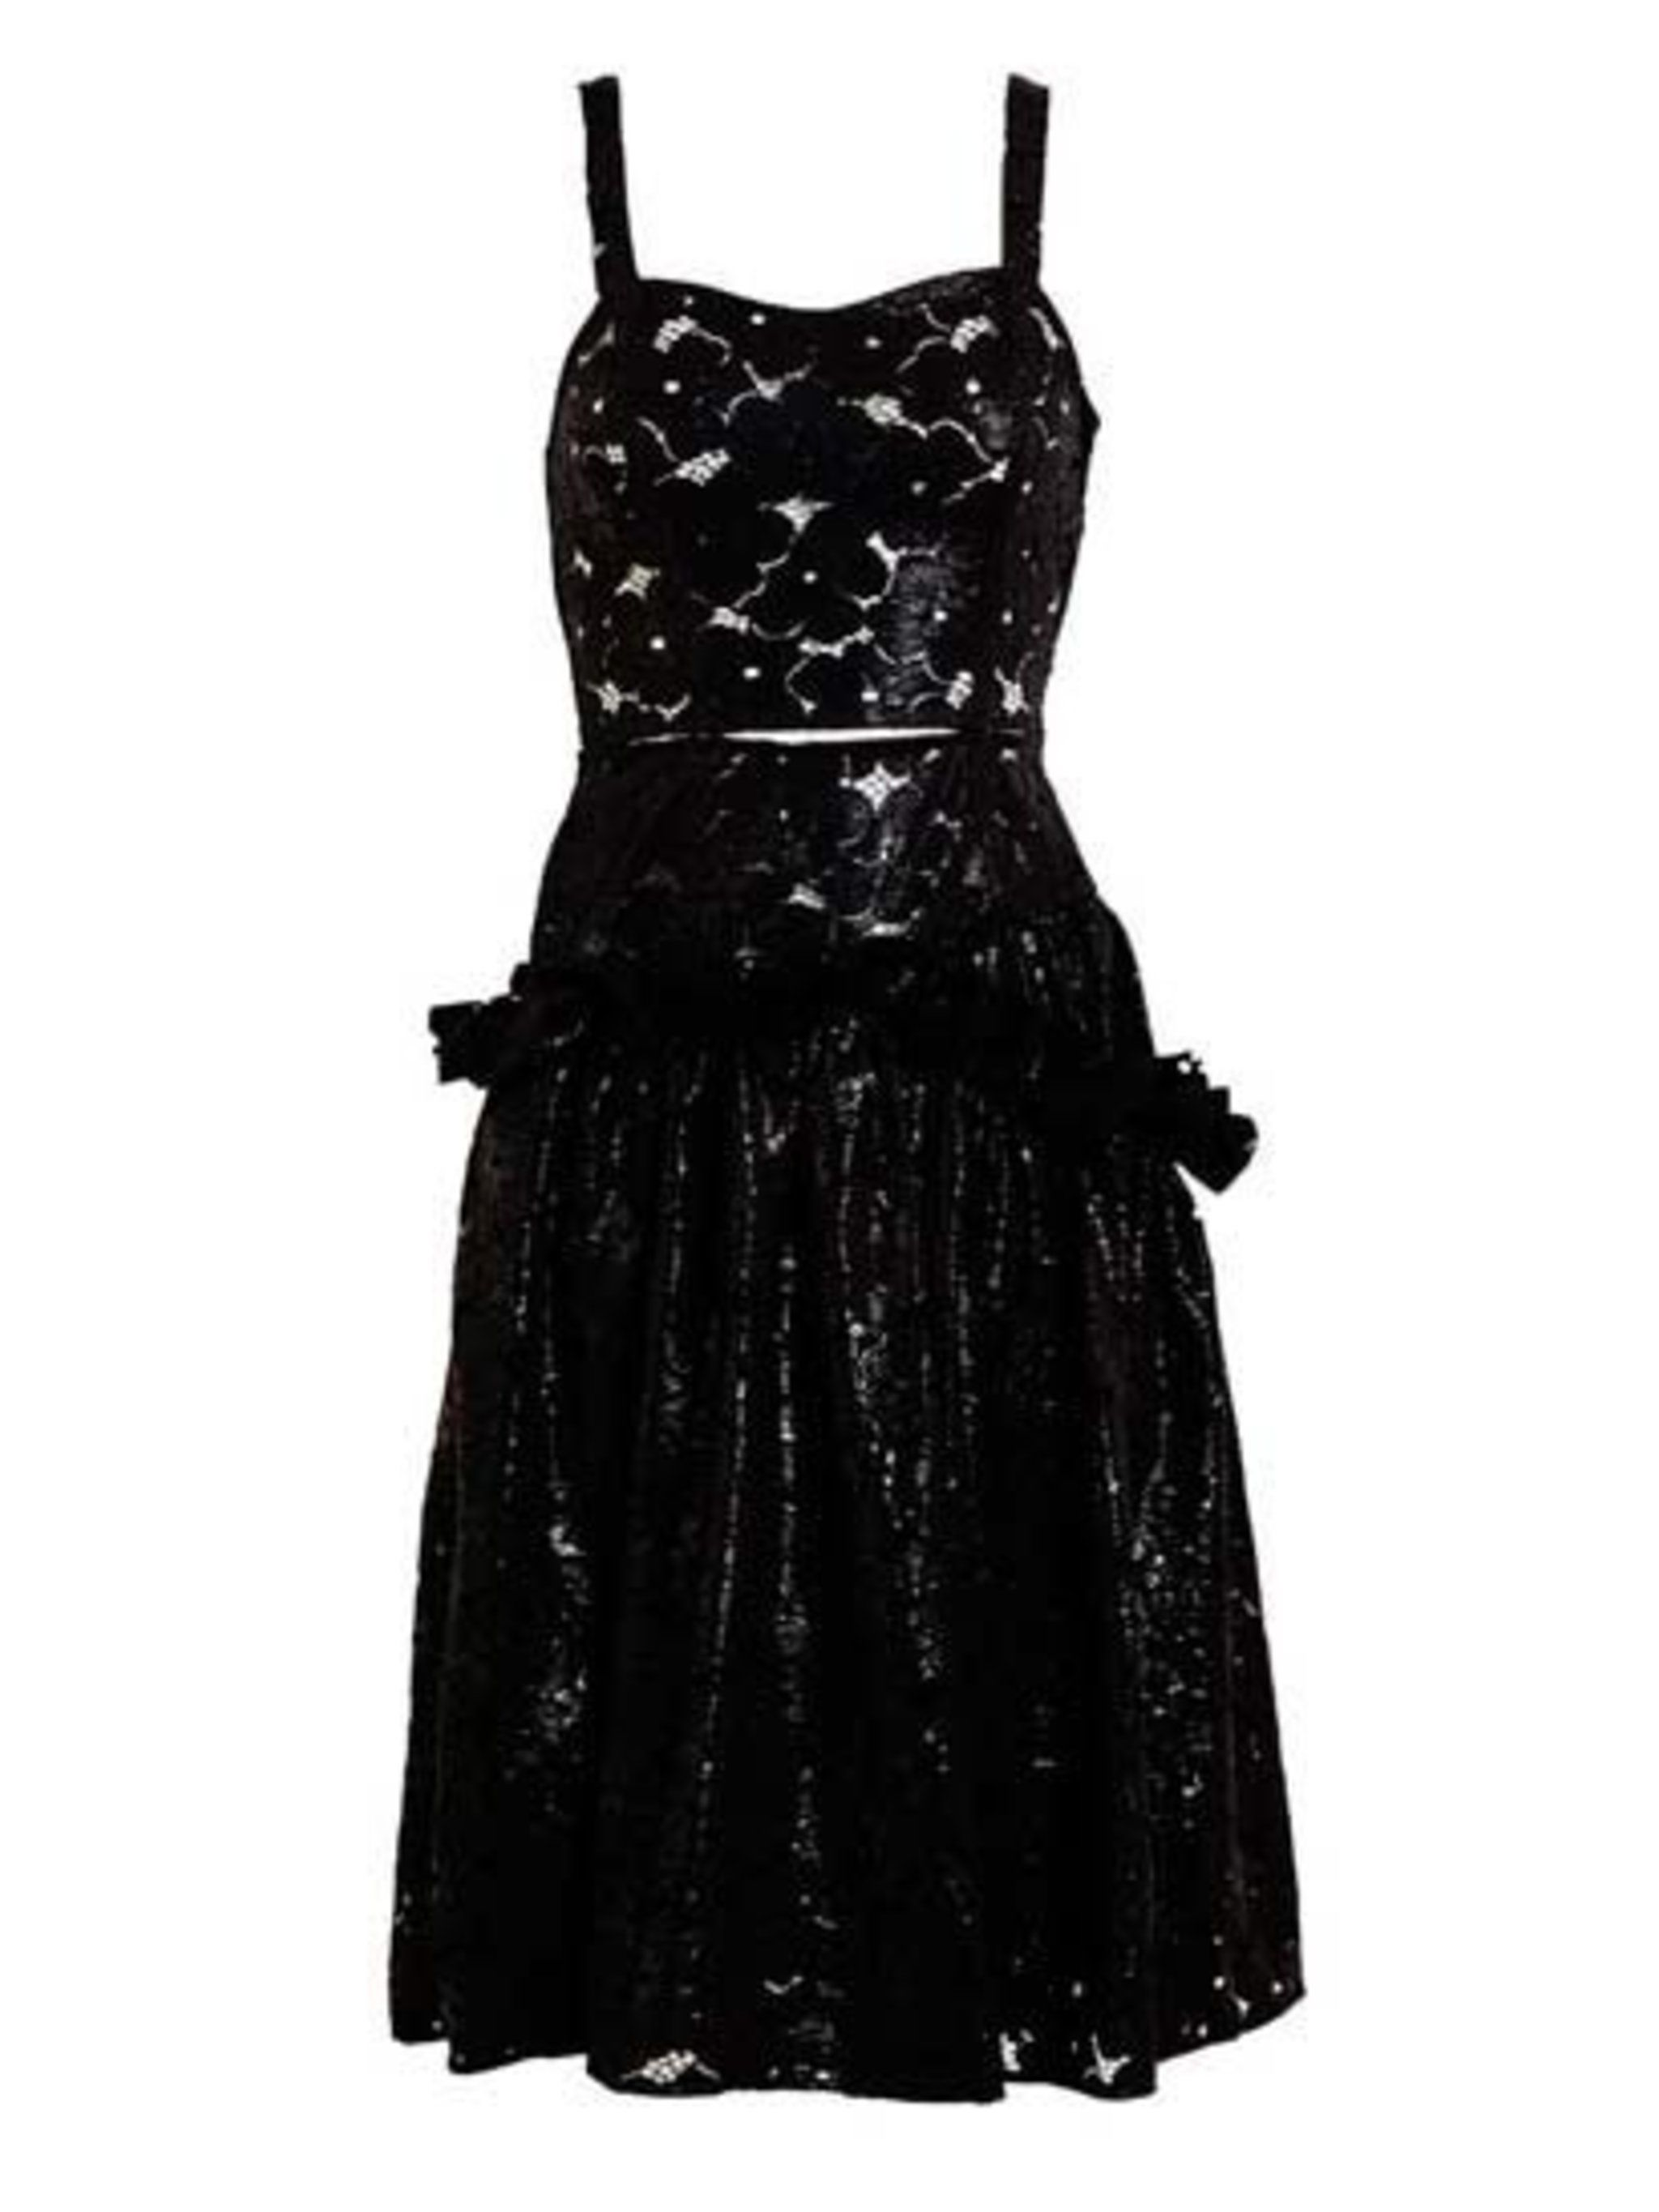 "<p>Boned black floral lace dress with wet-look coating, and a defined waist with cut-out detailing. This showpiece dress is £1,260 at <a href=""http://www.brownsfashion.com/product/038S09740007/027/wet-floral-lace-dress"">Browns</a>.</p>"